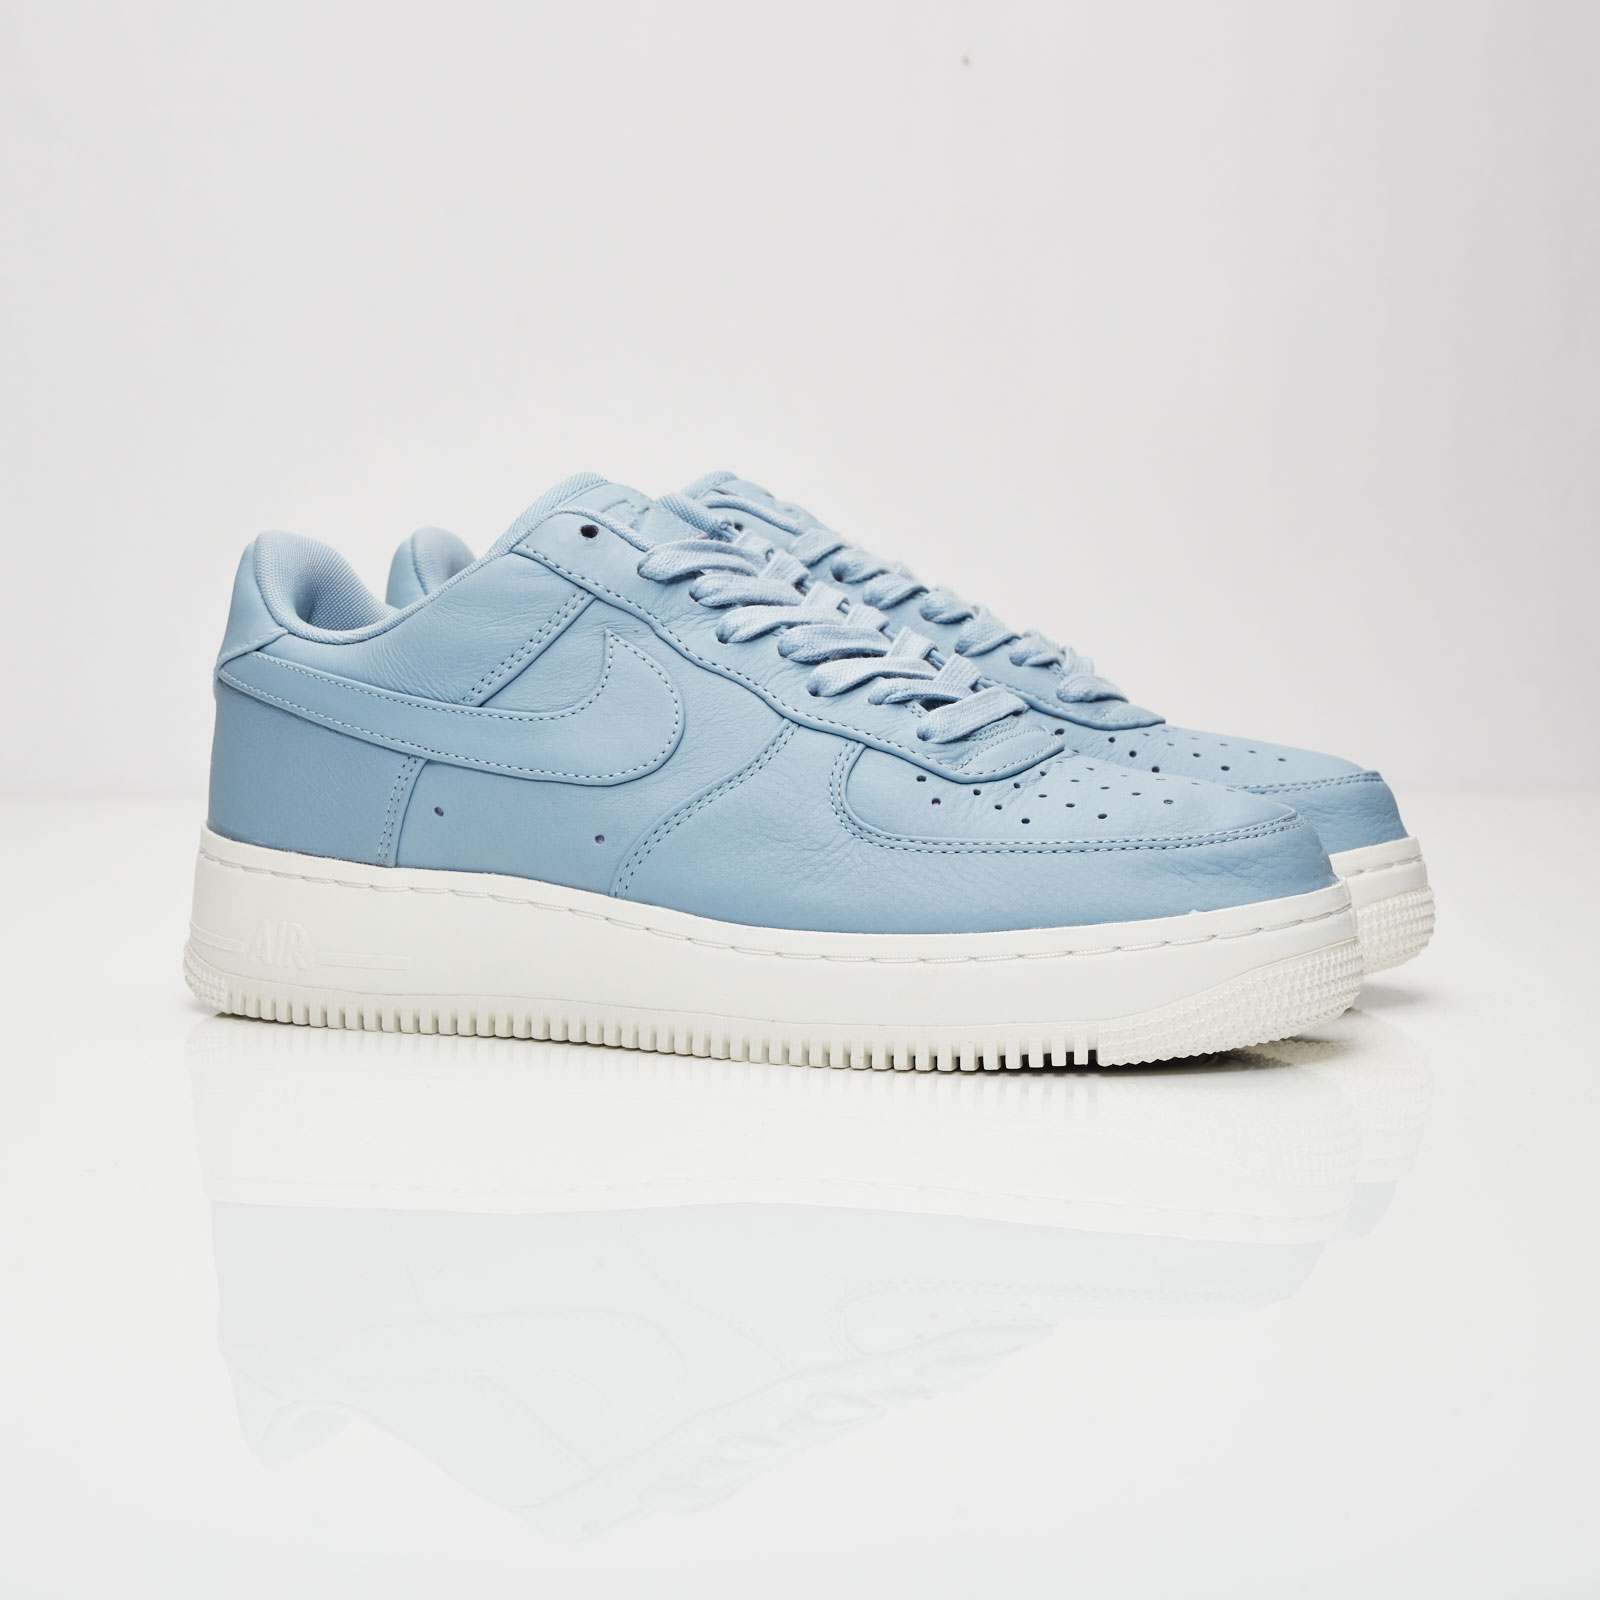 separation shoes 308dc e9703 Nike Air Force 1 Low